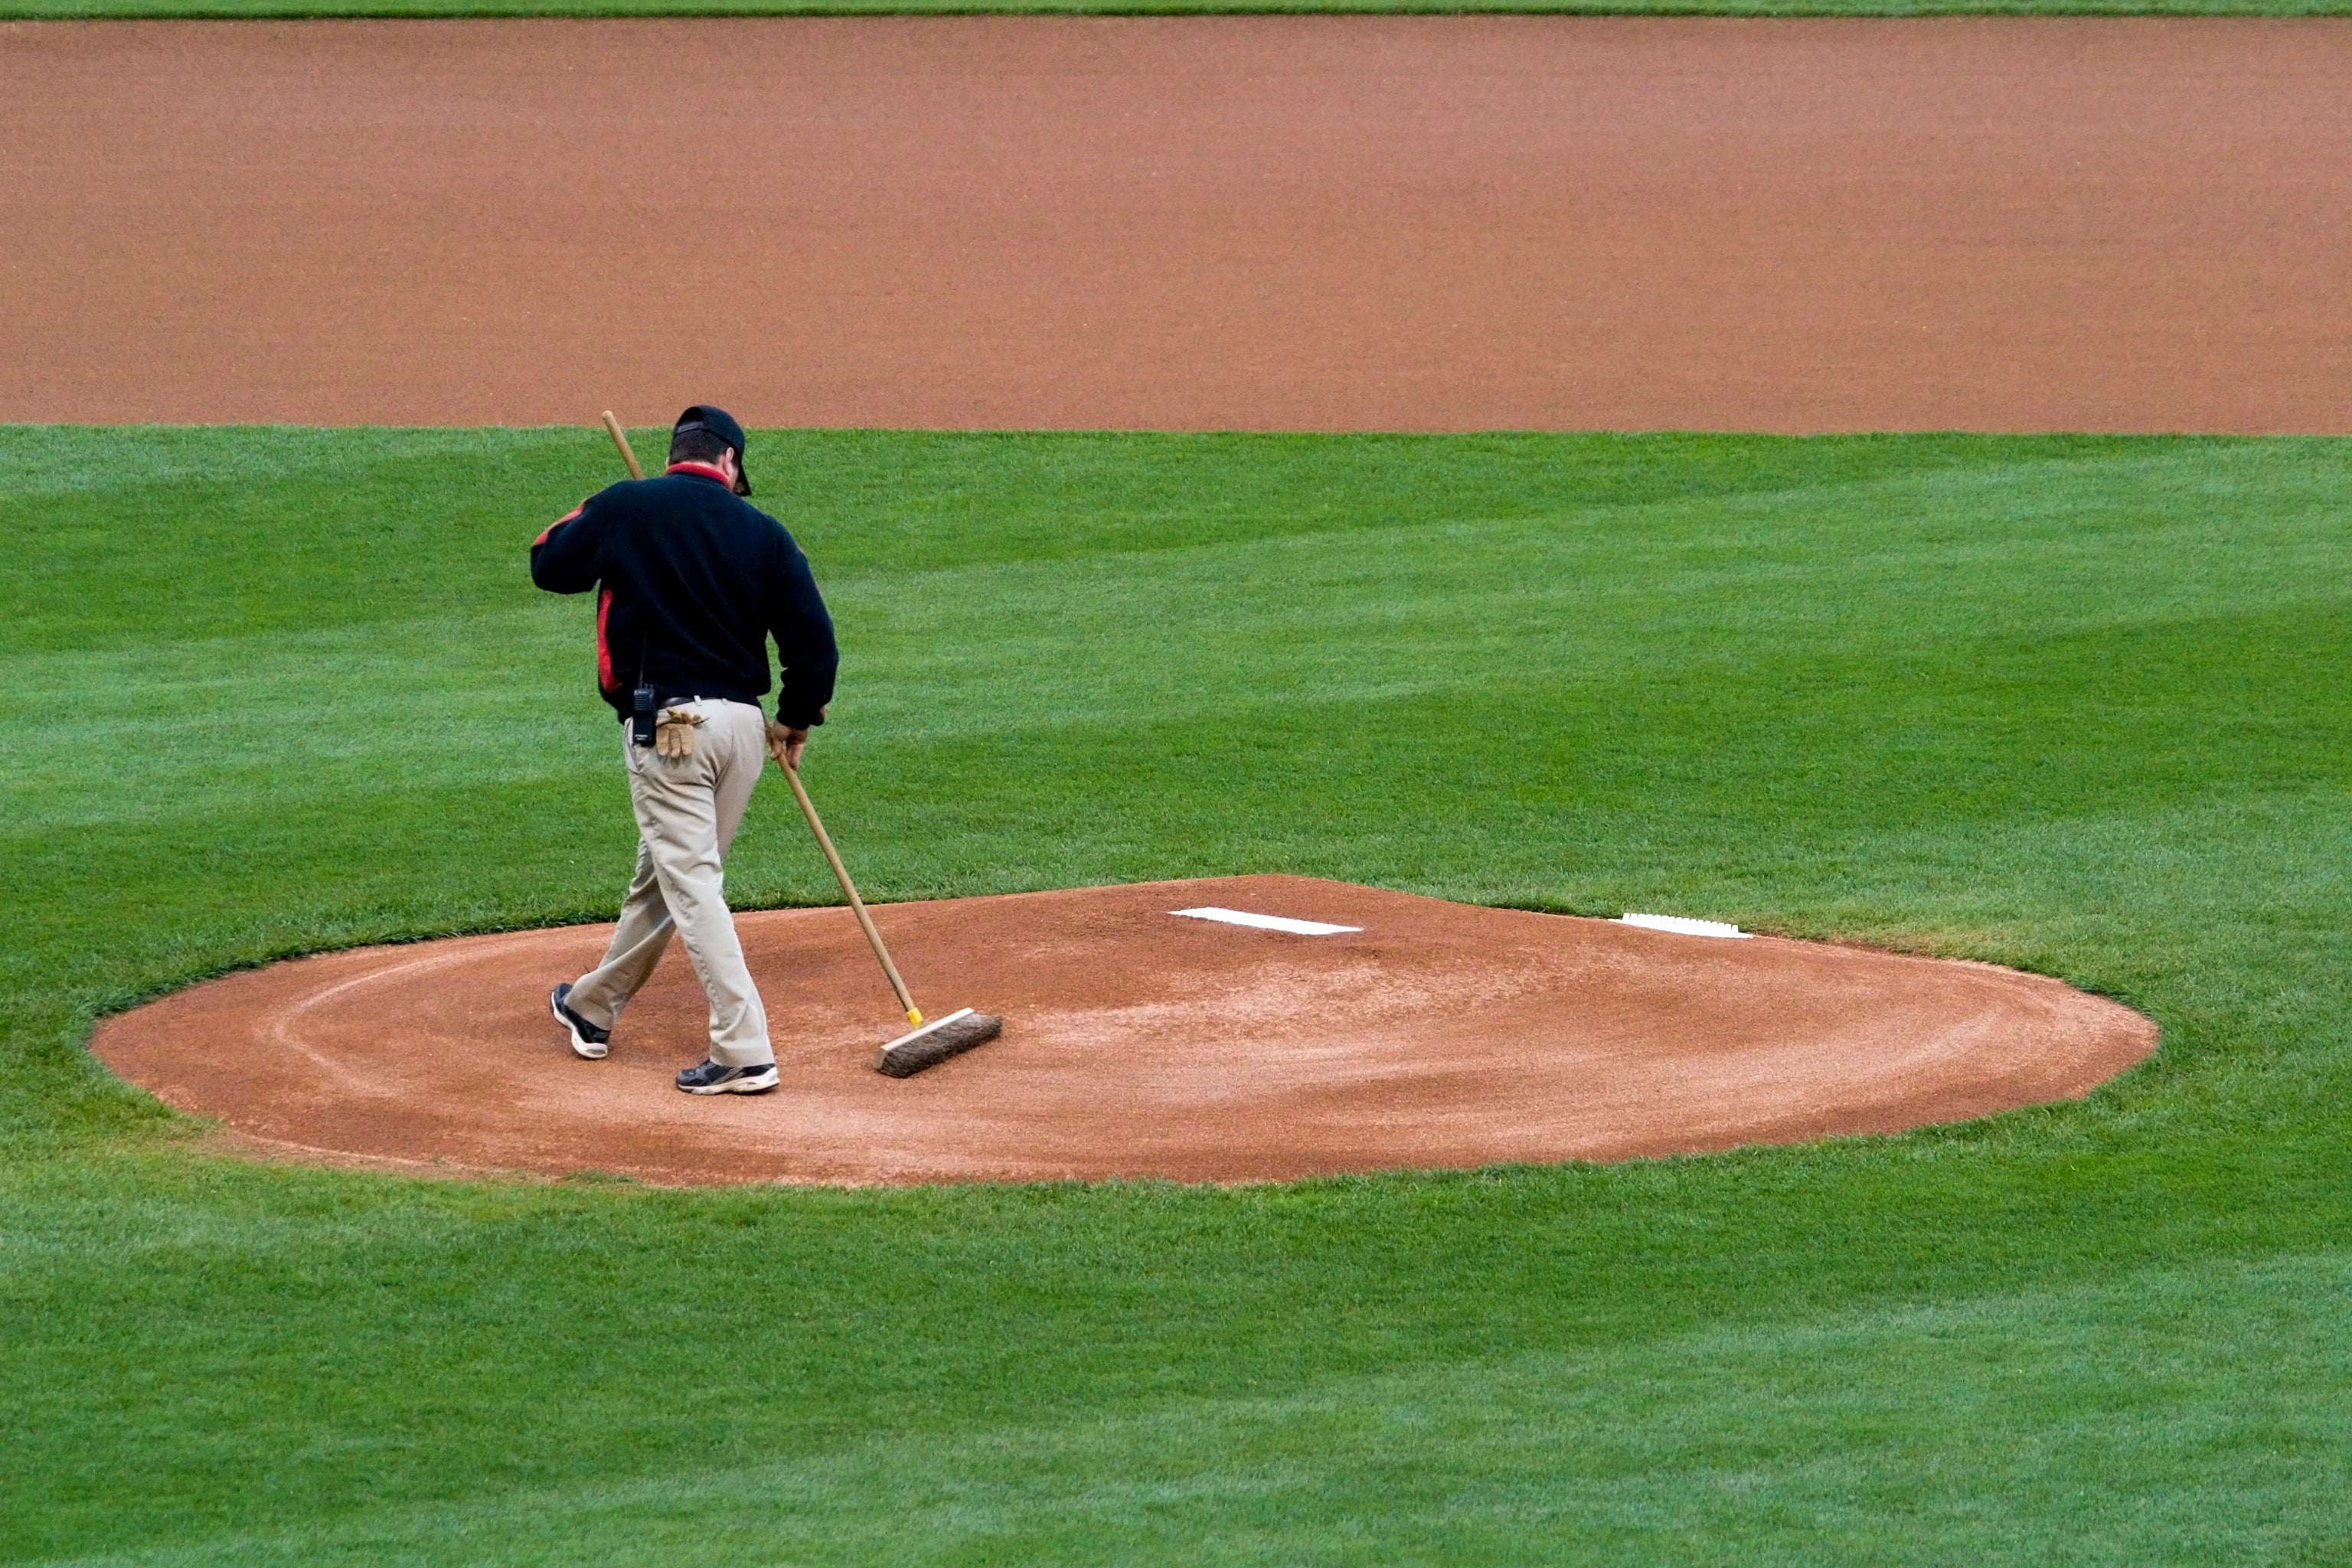 Grooming Pitchers Mound